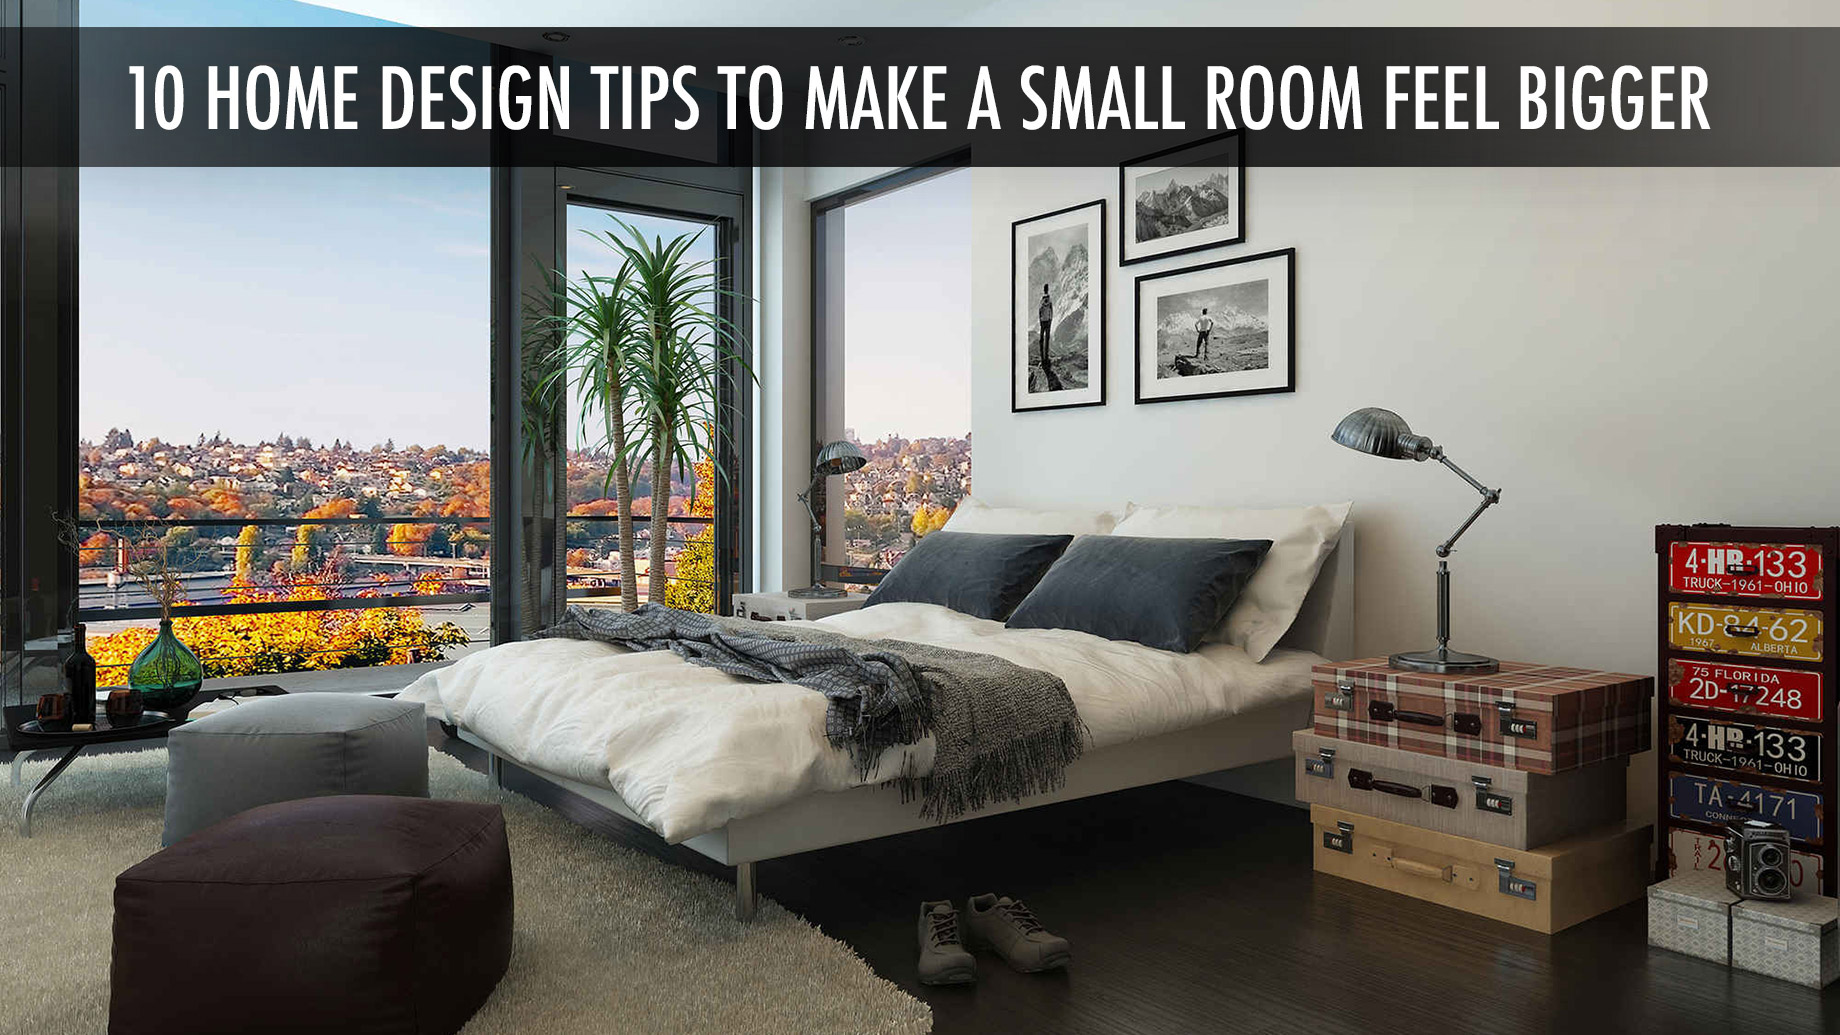 10 Home Design Tips to Make a Small Room Feel Bigger